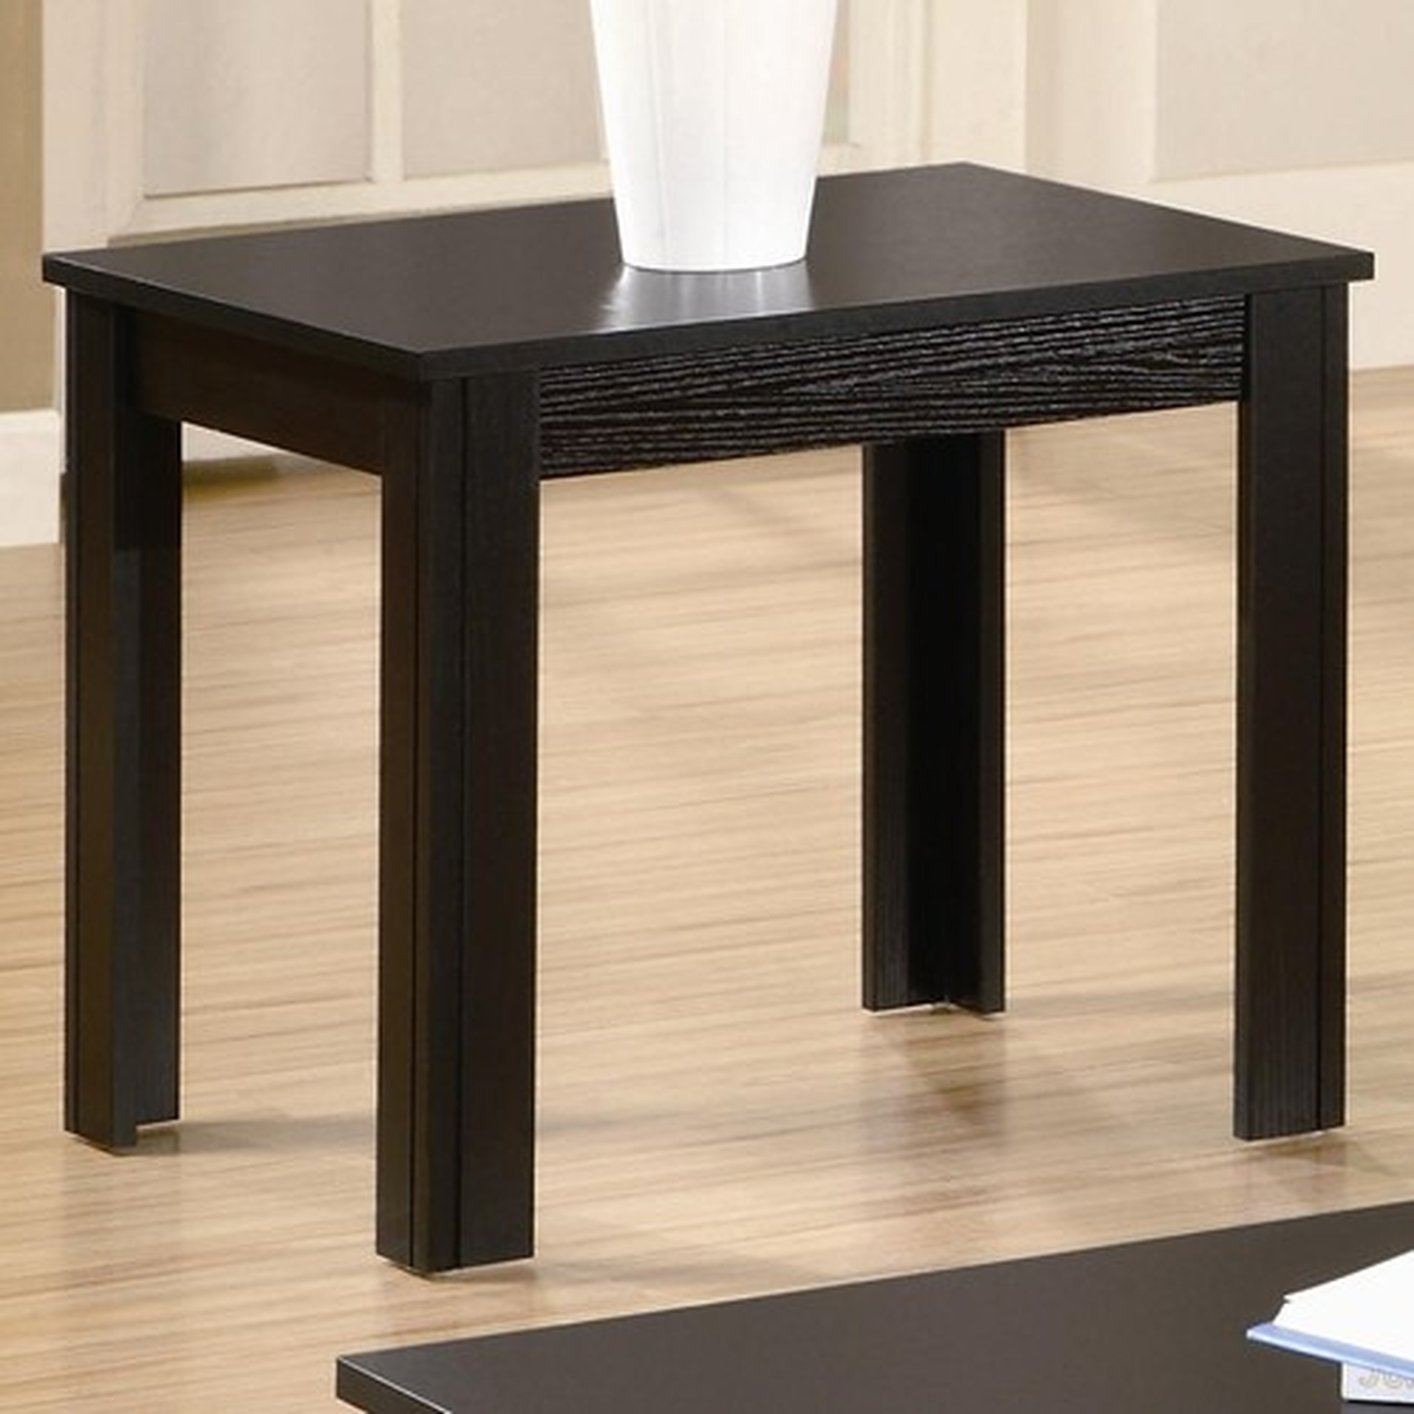 Tellbane Coffee Table.Black Wood Coffee Table Set Inspirational Interior Style Concepts